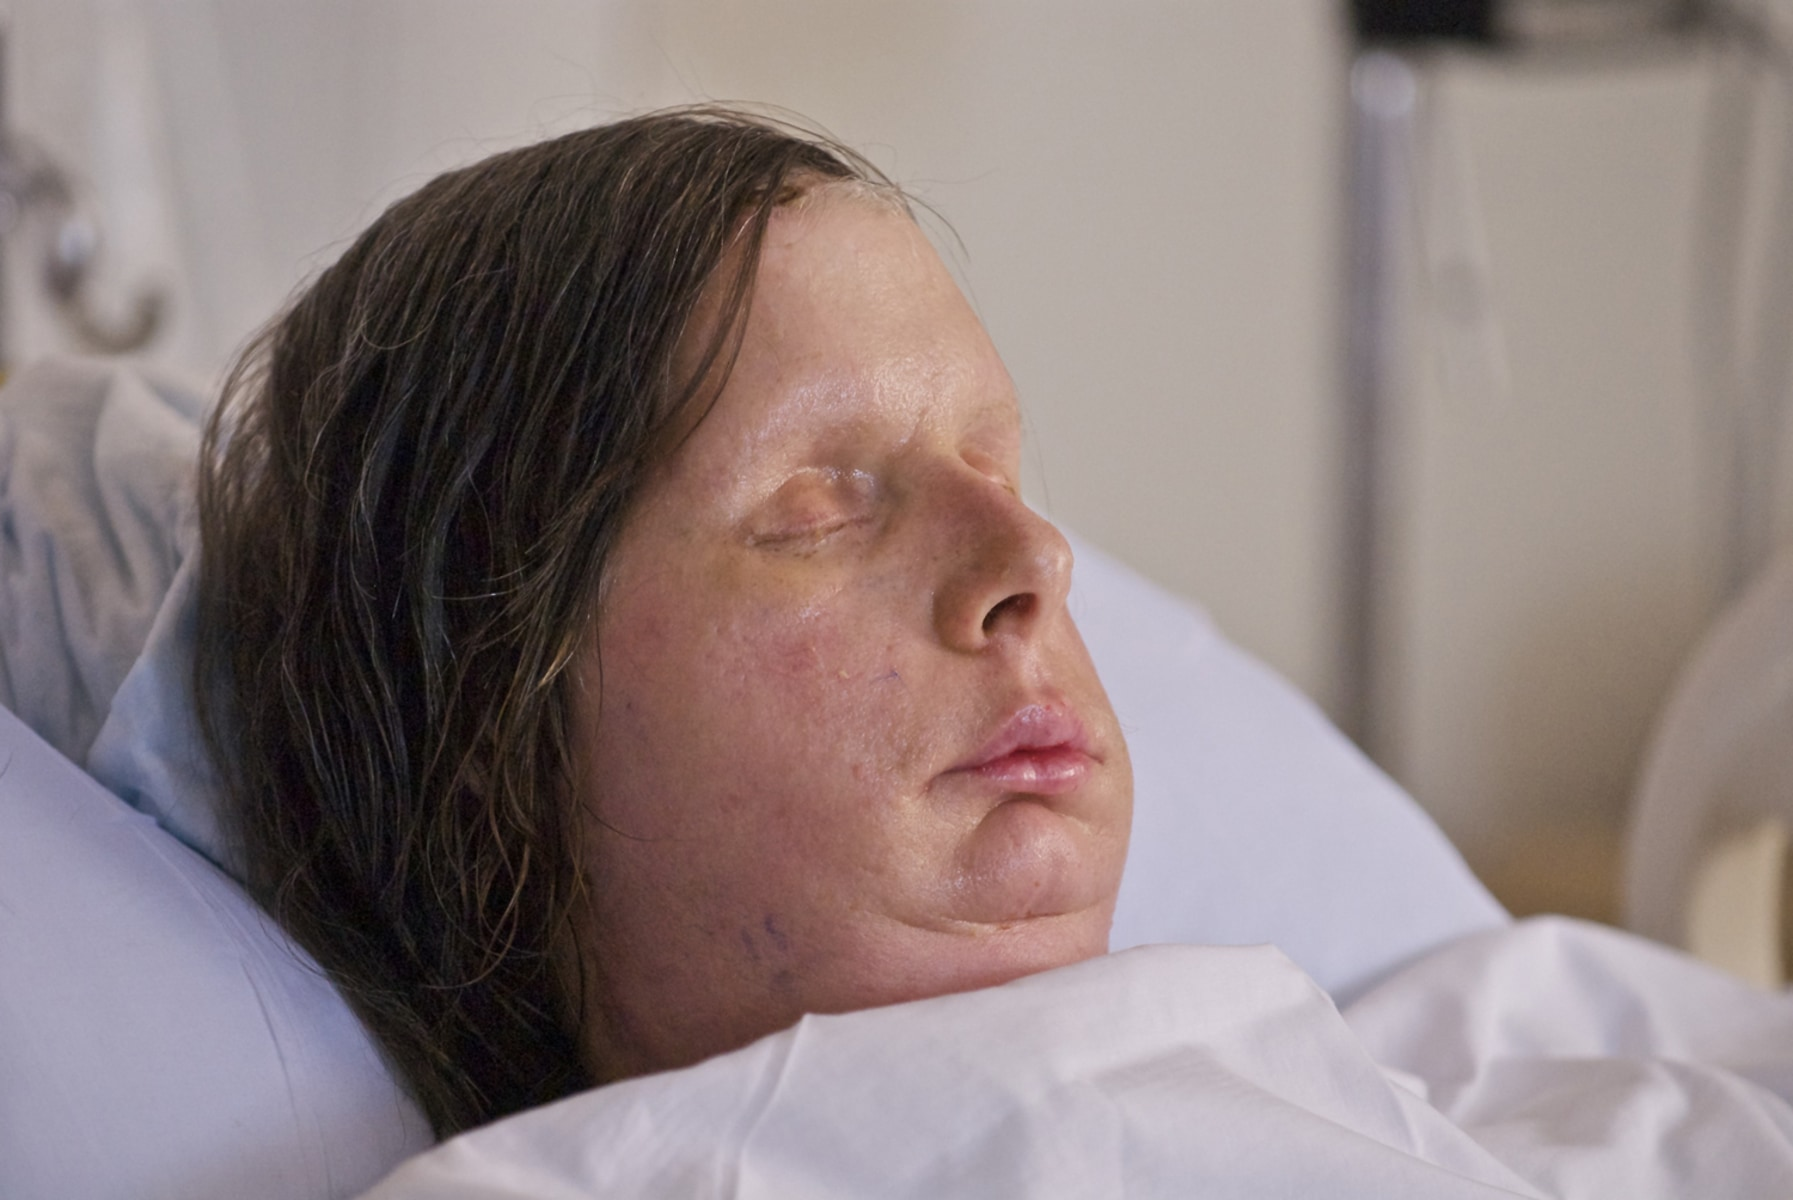 charla nashs chimp incident The attack on charla nash, 57, took place in february 2009 during the attack, she lost her hands, nose, lips and eyelids the chimpanzee, named travis, belonged to her friend and weighed 200 pounds.